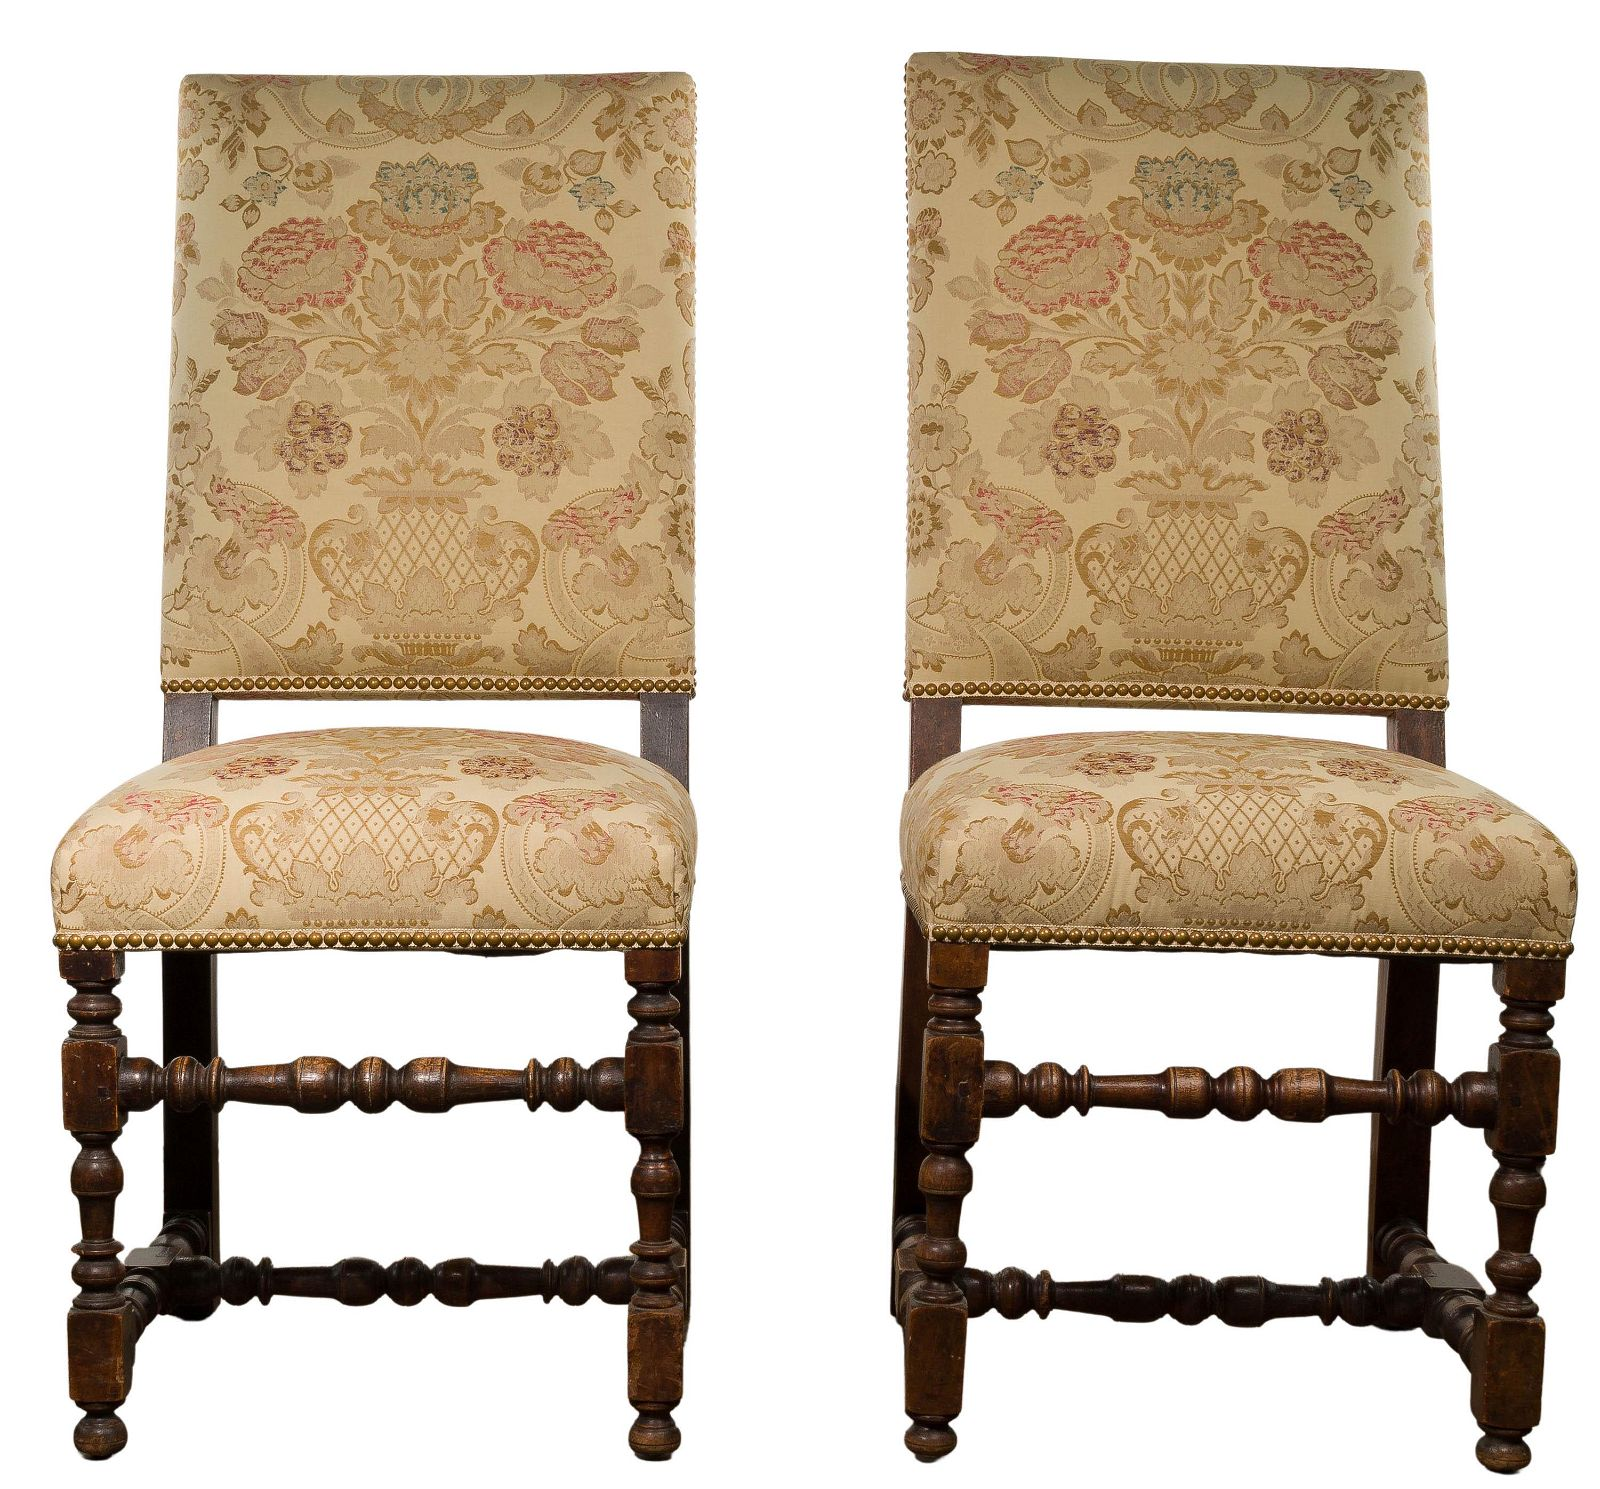 Mahogany Framed Upholstered Chairs